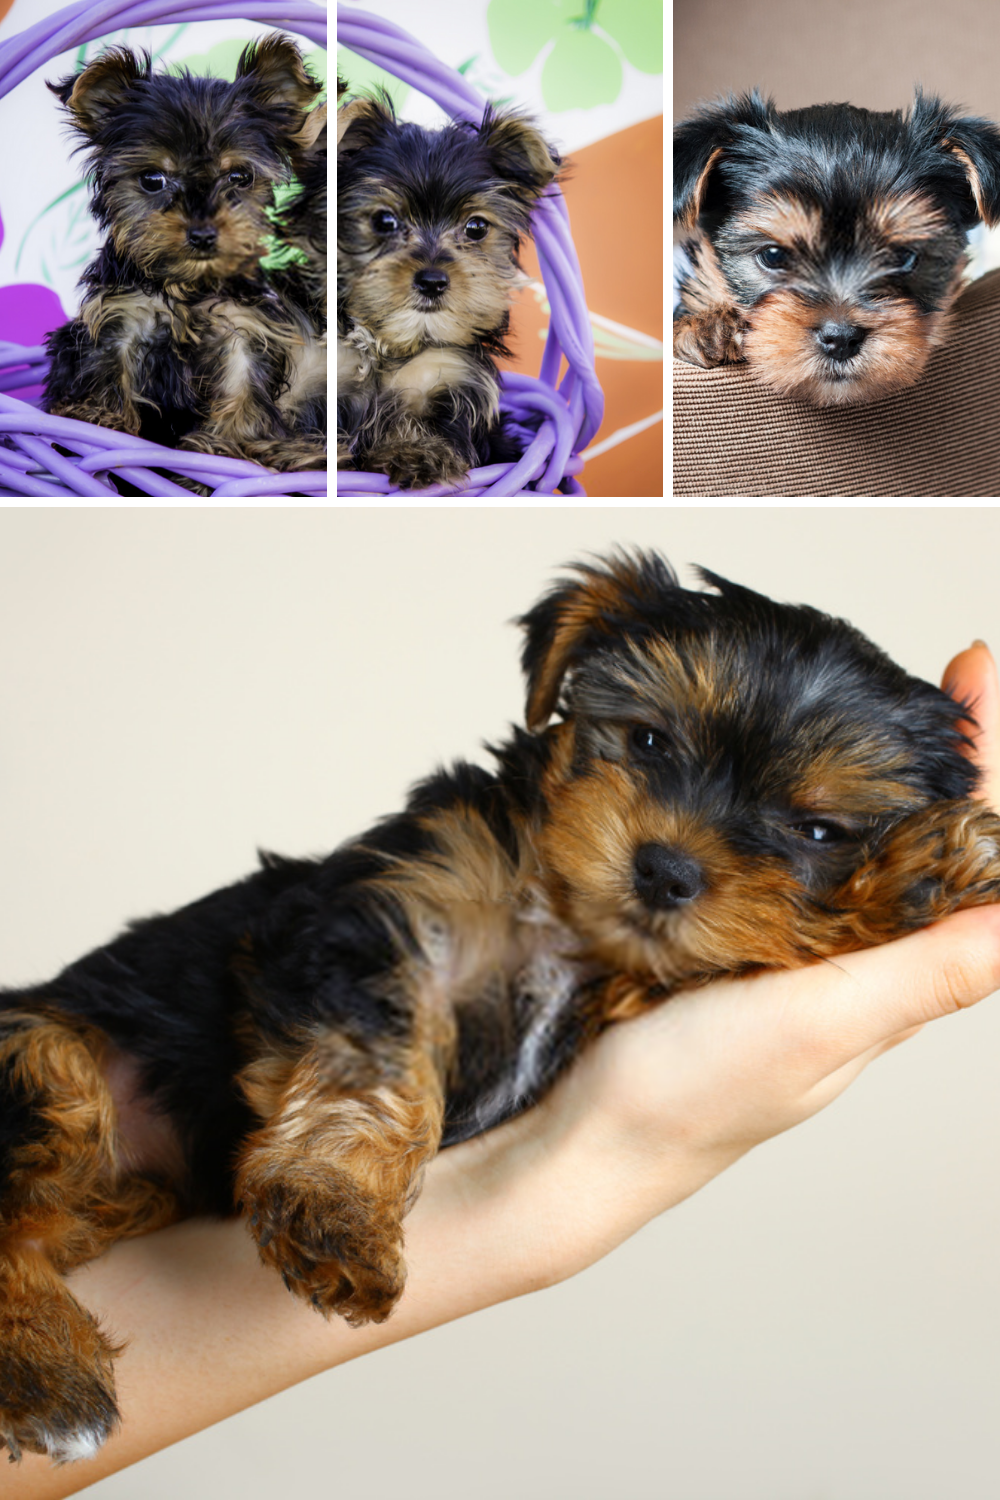 Terrier Puppies The Yorkshire Terriers Dog Puppy Picture In 2020 Yorkshire Terrier Dog Terrier Puppies Yorkshire Terrier Puppies